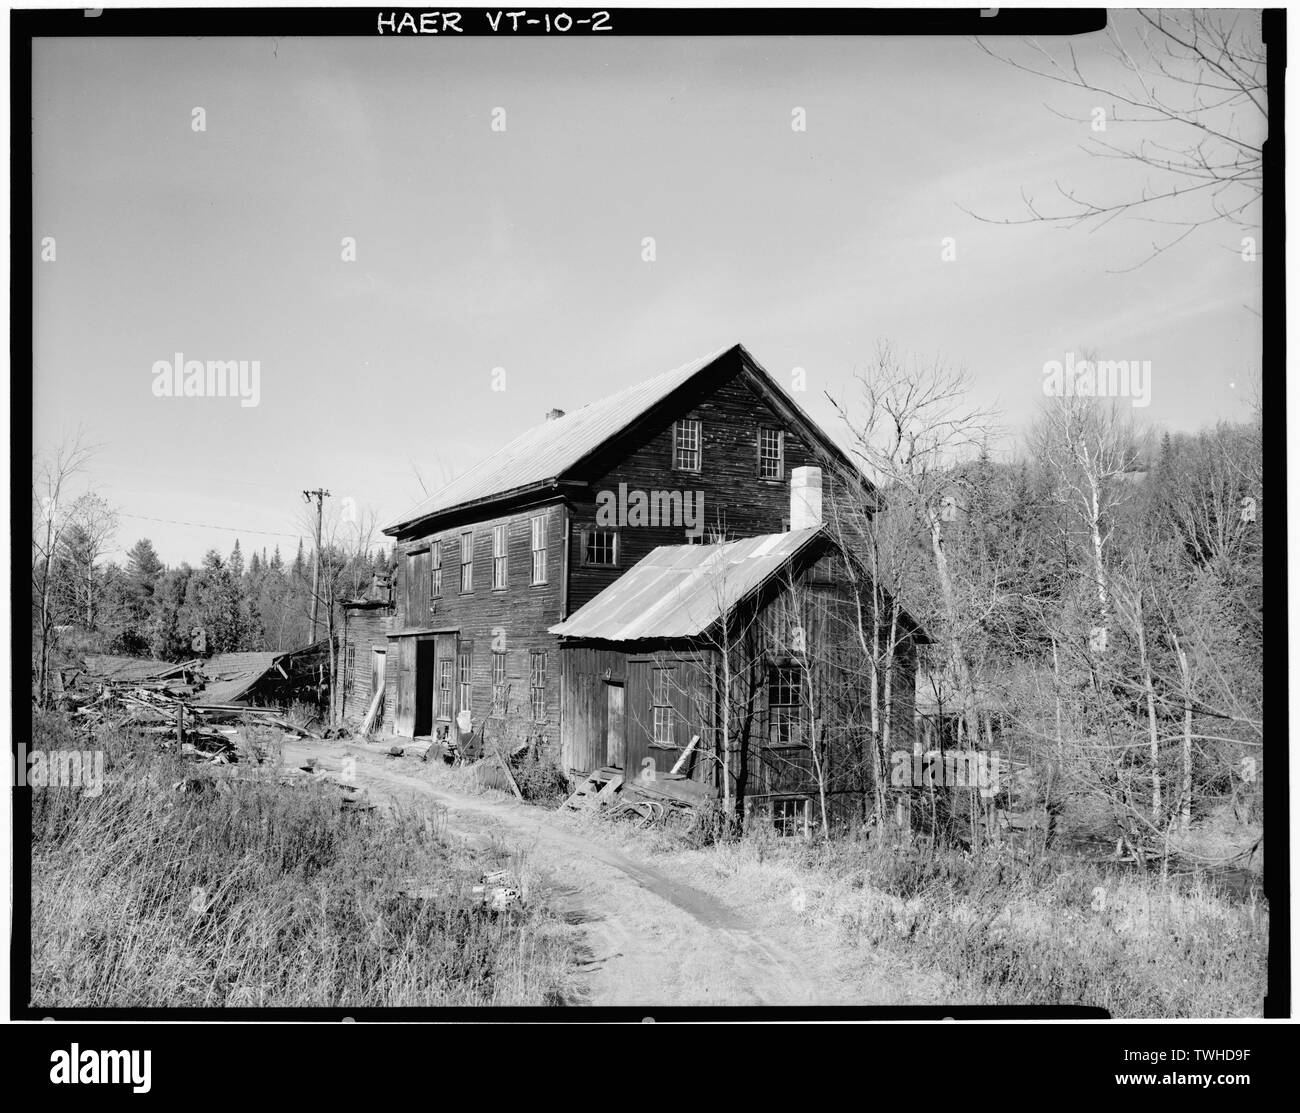 SE and SW elevations- view looking north showing Woodworking Mill and Blacksmith Shop - Ben Thresher's Mill, State Aid No. 1, Barnet, Caledonia County, VT; Rockefeller, Laurance S; Jack, Alexander; Judkins, James Loren; Stevens, Willard; Stevens, Henry; Gleason, Samuel; Barnet Cotton and Woolen Manufacturing Company; Herrin, John; Greenbank, Thomas; Greenbank, George; Taylor, James; Goodwillie, James; Shaw, William; McLaren, James; Somers, James S; Alexander Jack's Dye and Print Works; Smith, Isaac M; Bishop, Ora; Ford, Elmer S; Judkins, Fenton; Judkins, Donald; Pioneer Electric Light Company; - Stock Image